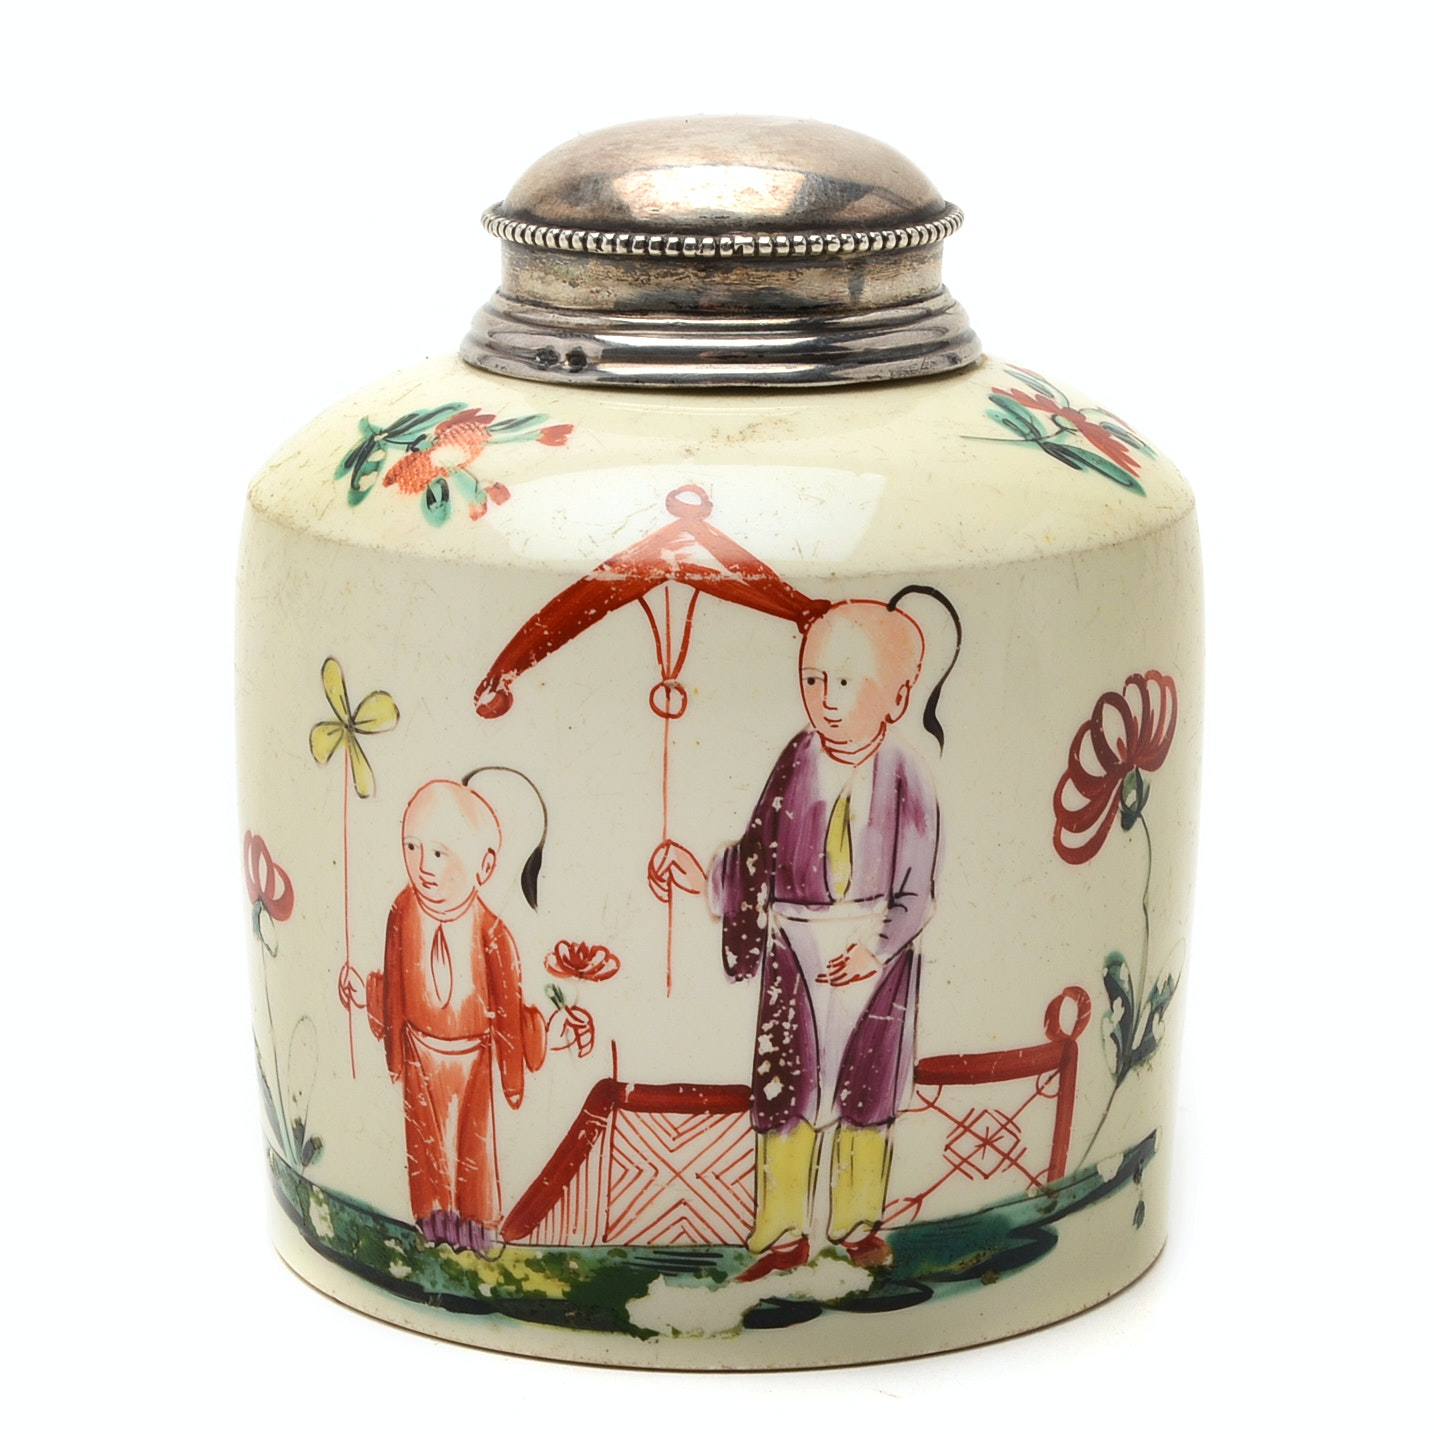 18th-Century English Creamware Tea Caddy with Sterling Silver Lid